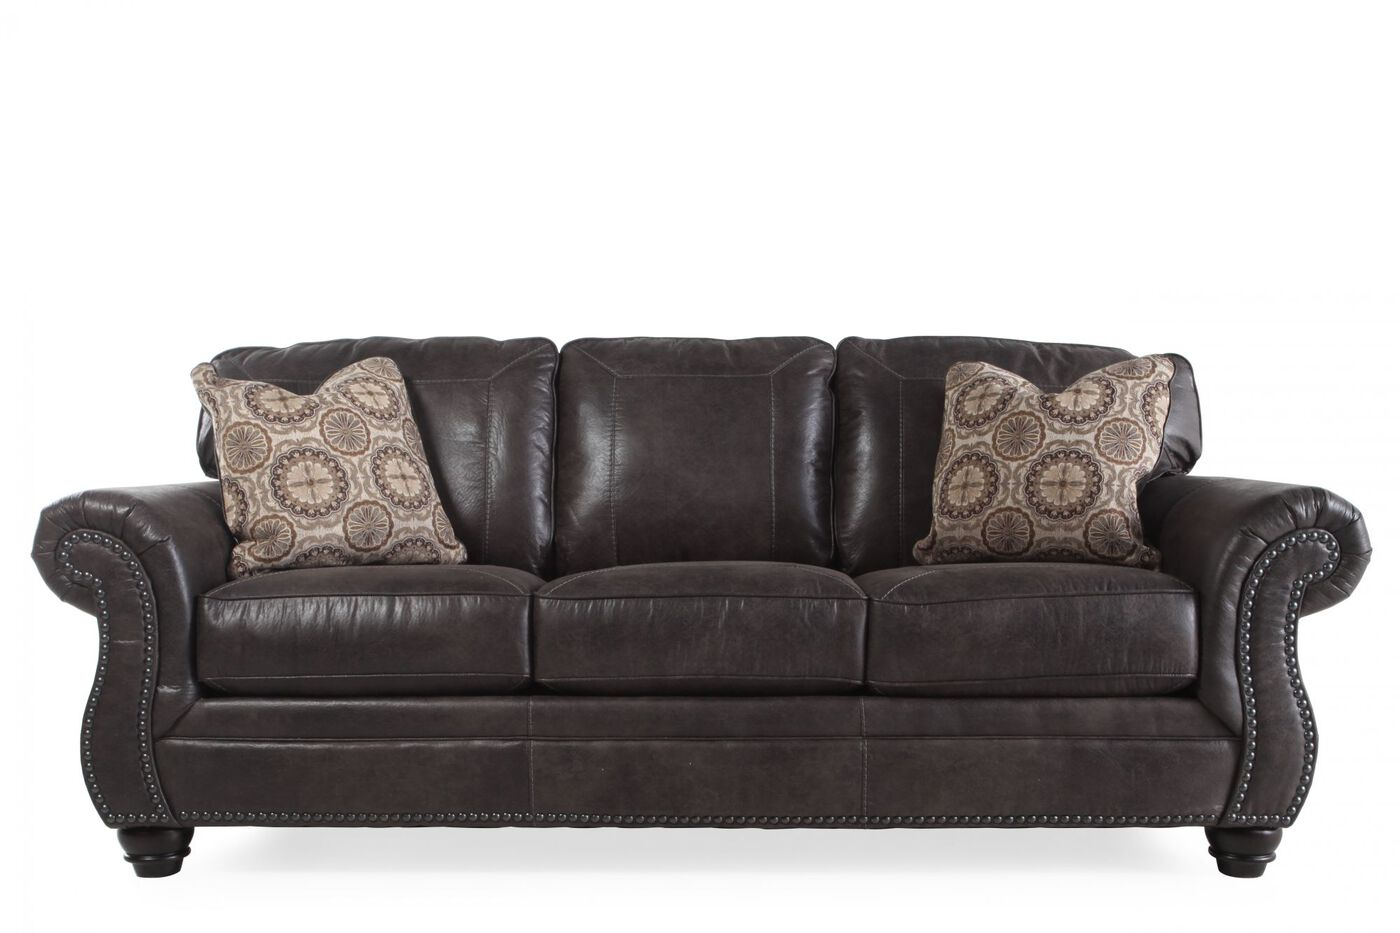 Breville sofa in charcoal mathis brothers for Charcoal sofa